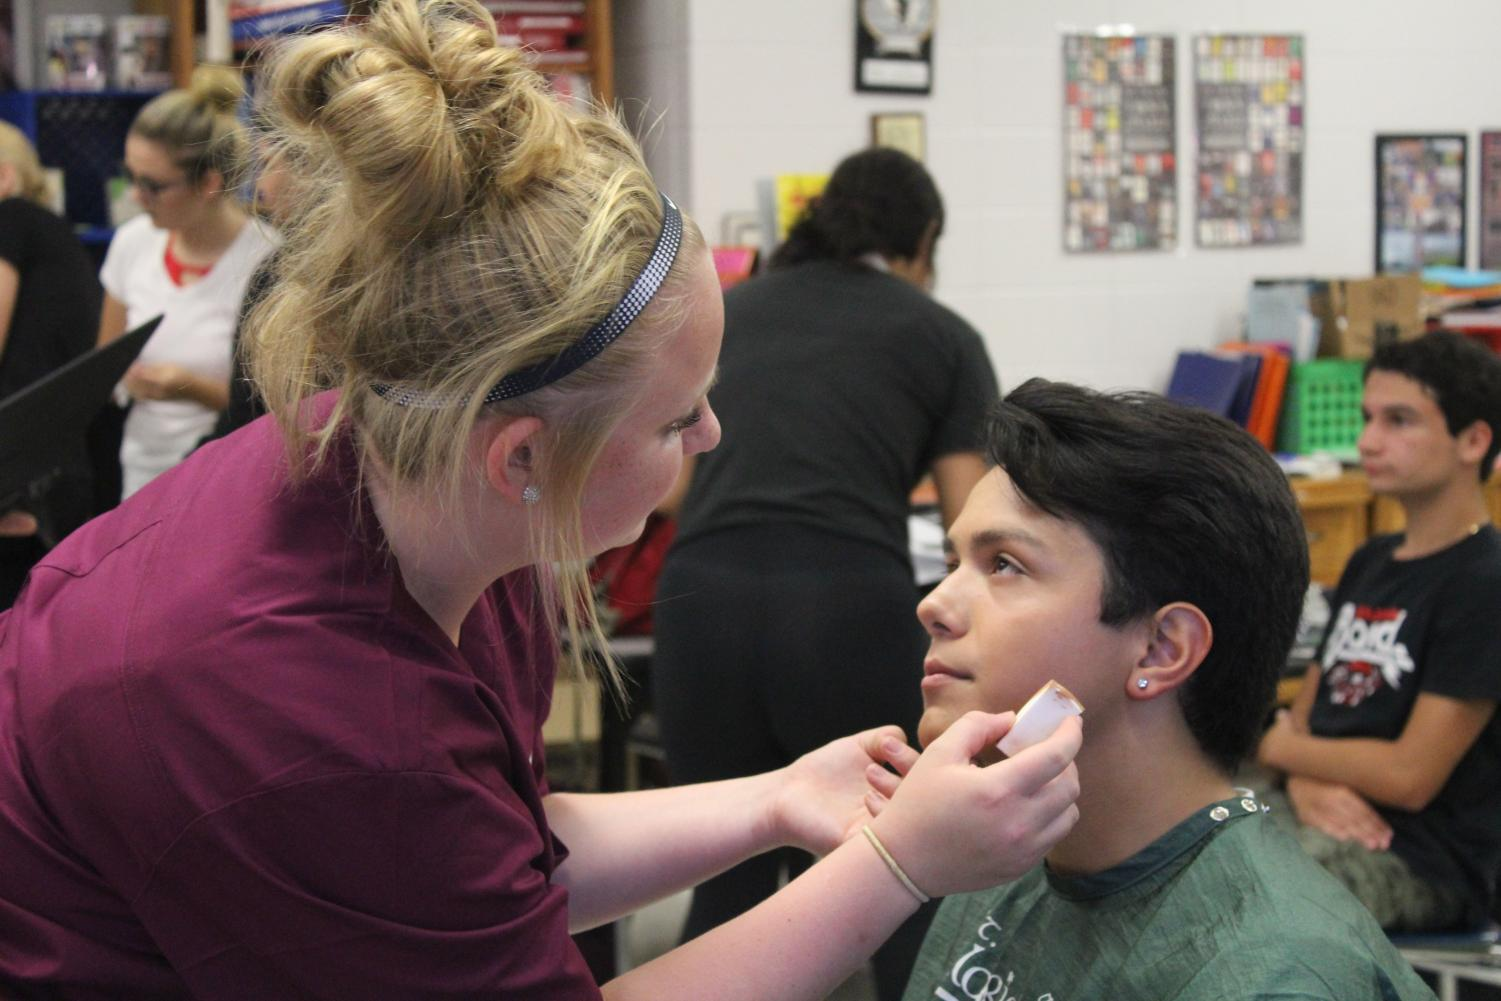 Makeup artist from the Technology Center of DuPage prepares senior Rudy Munoz for